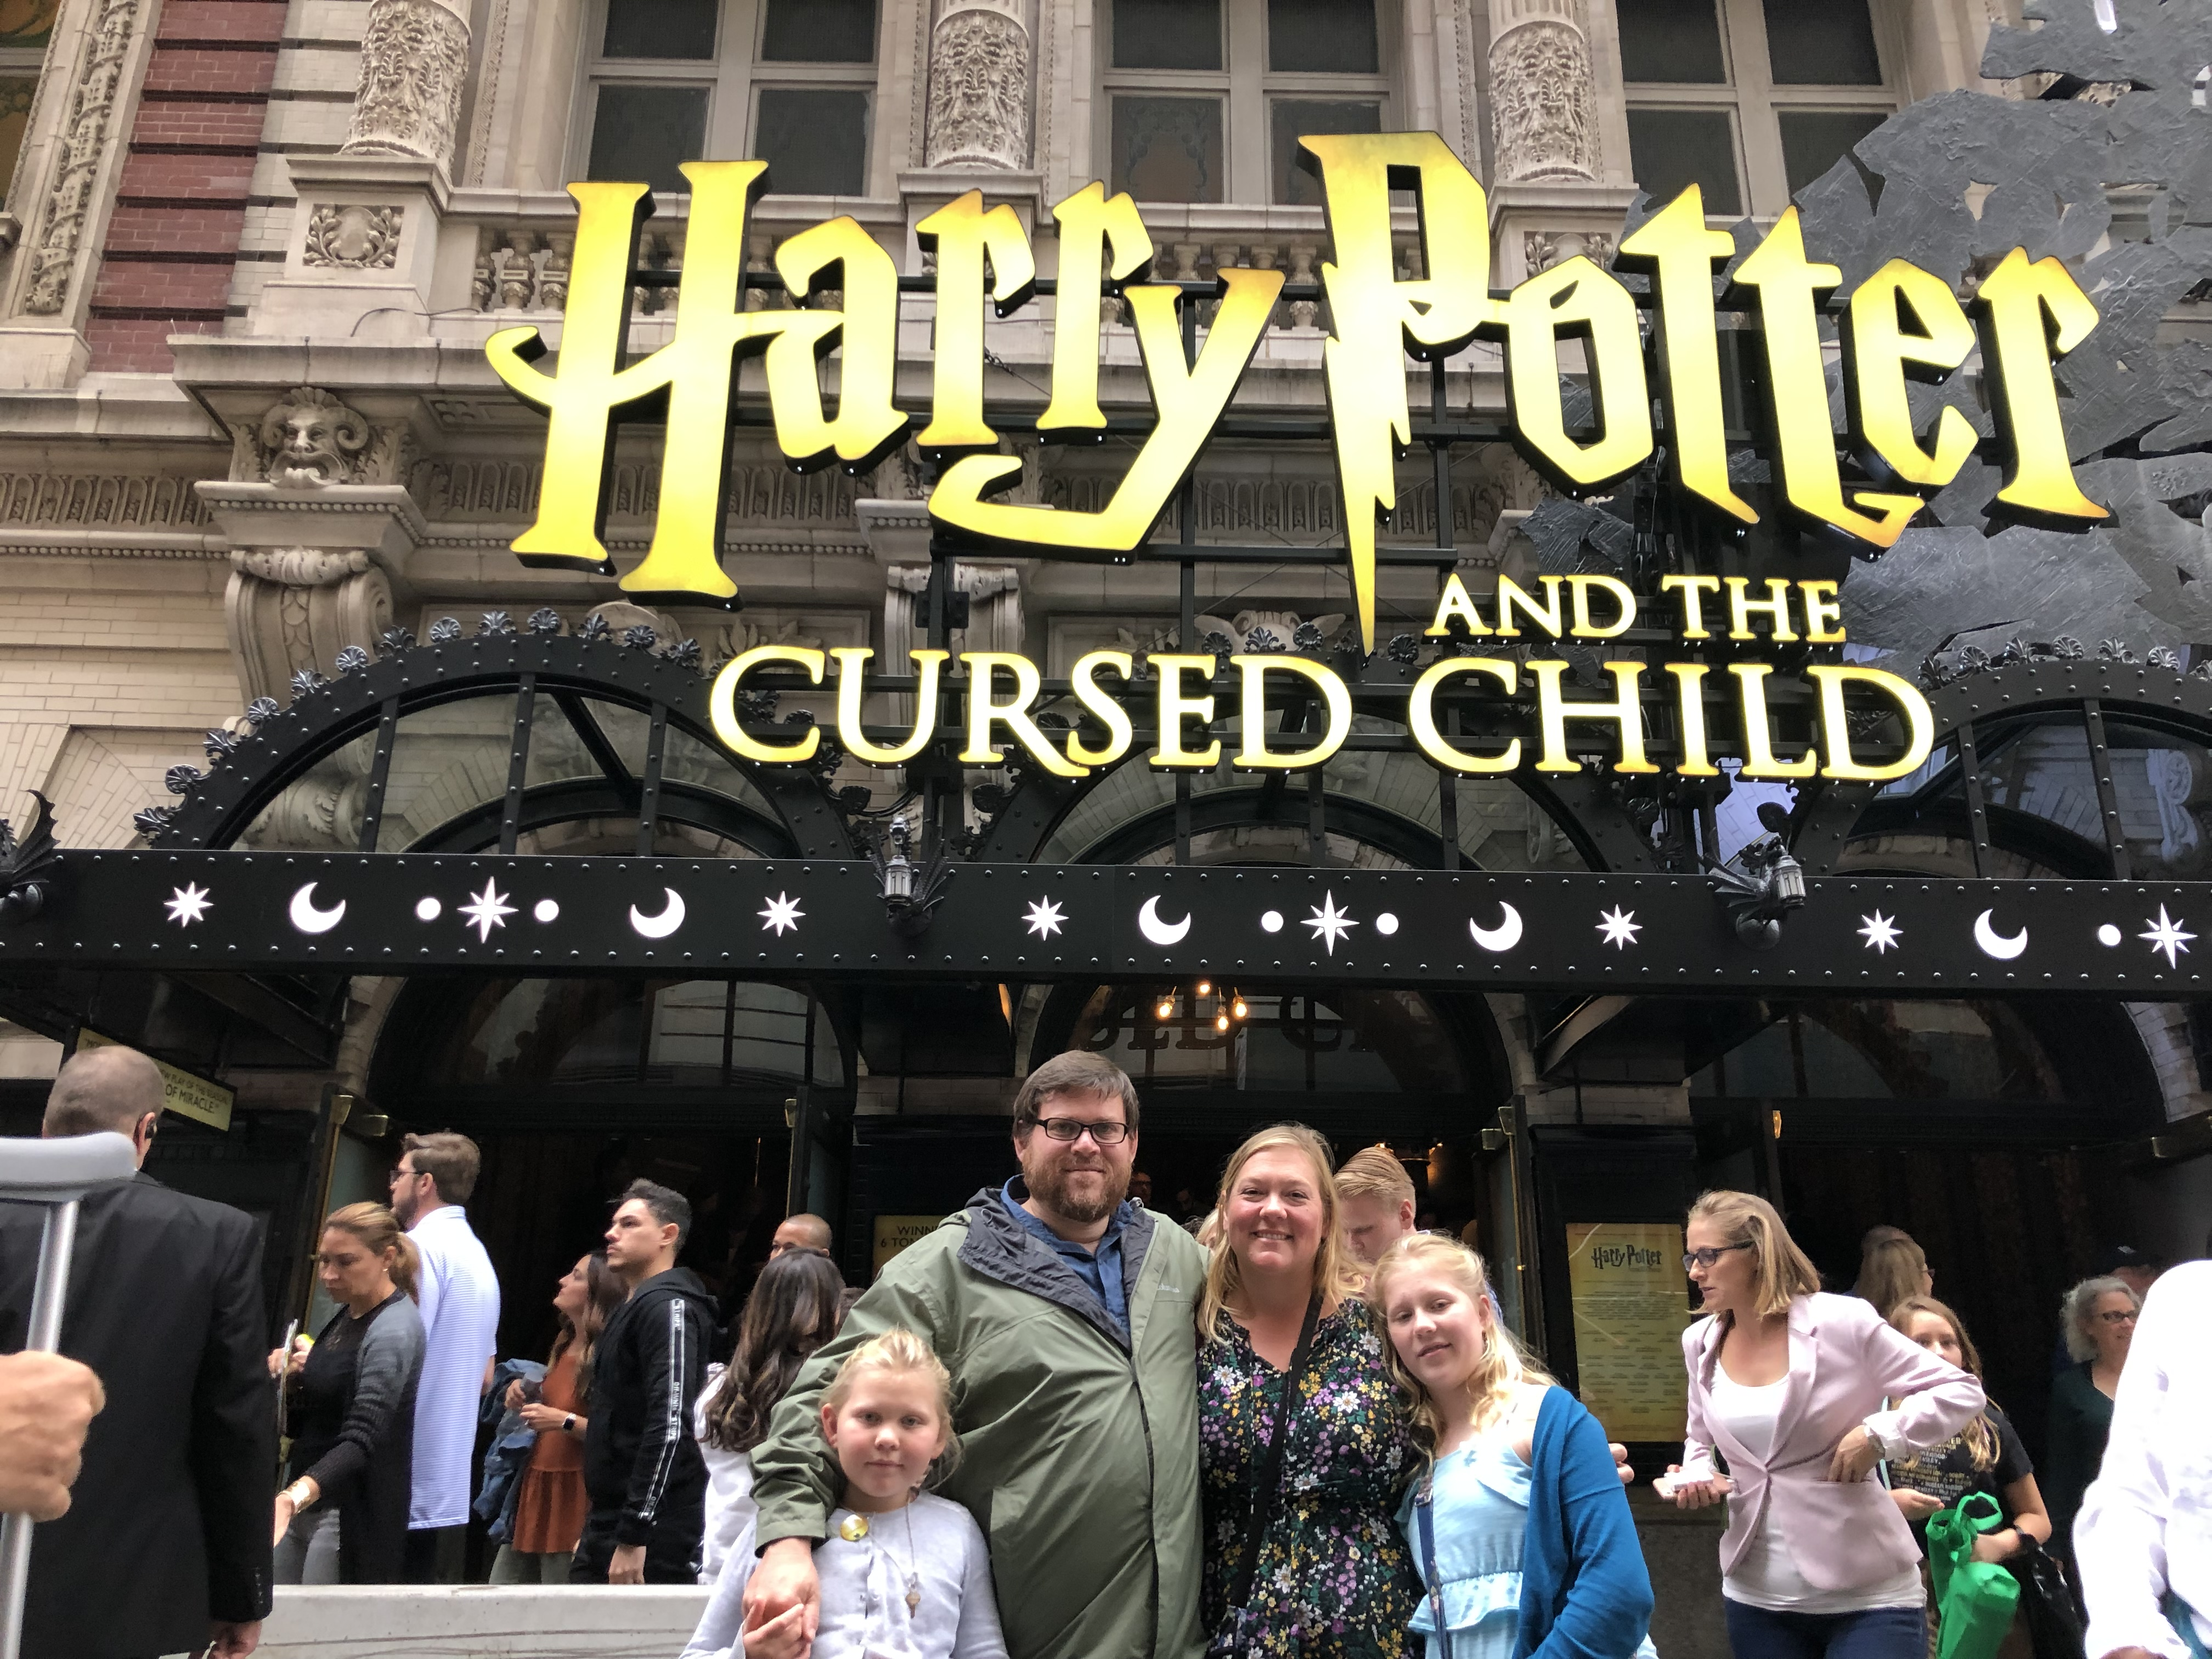 outside Harry Potter and the Cursed Child